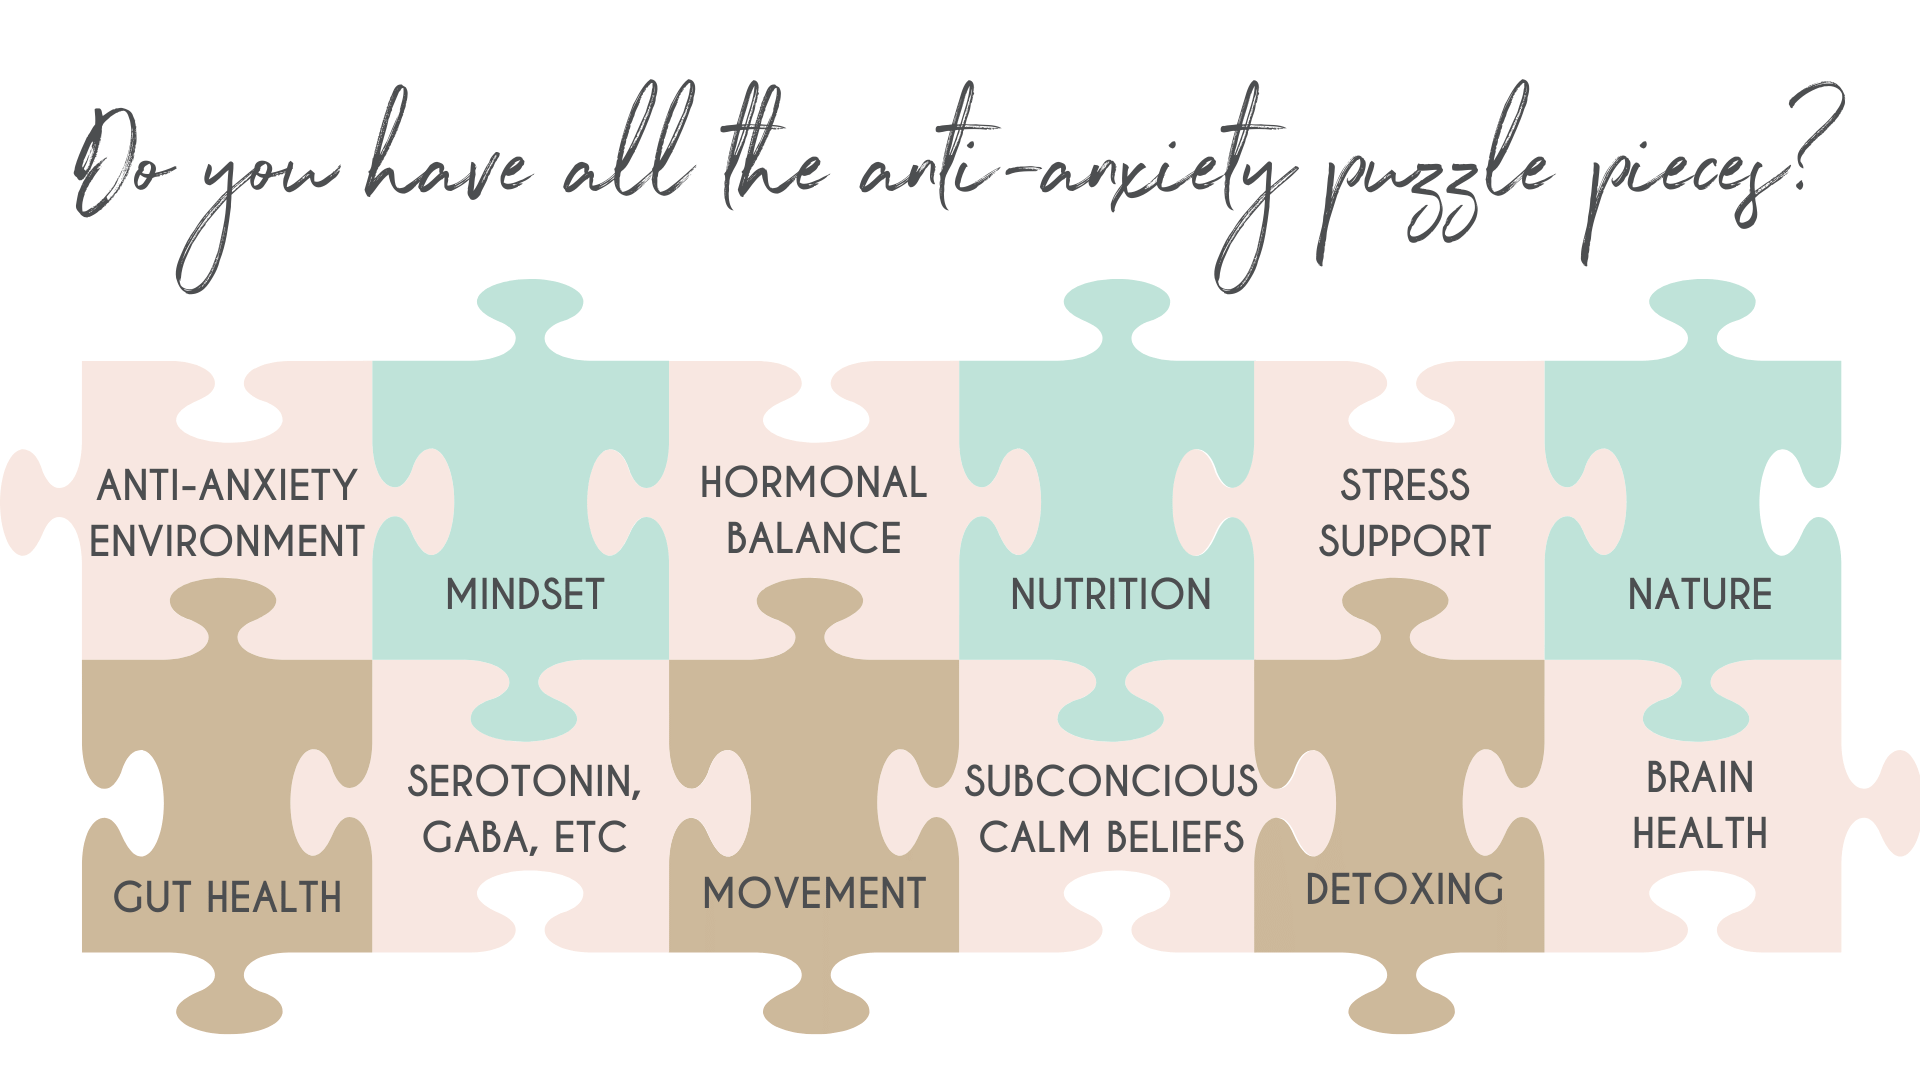 Antianxiety puzzle pieces